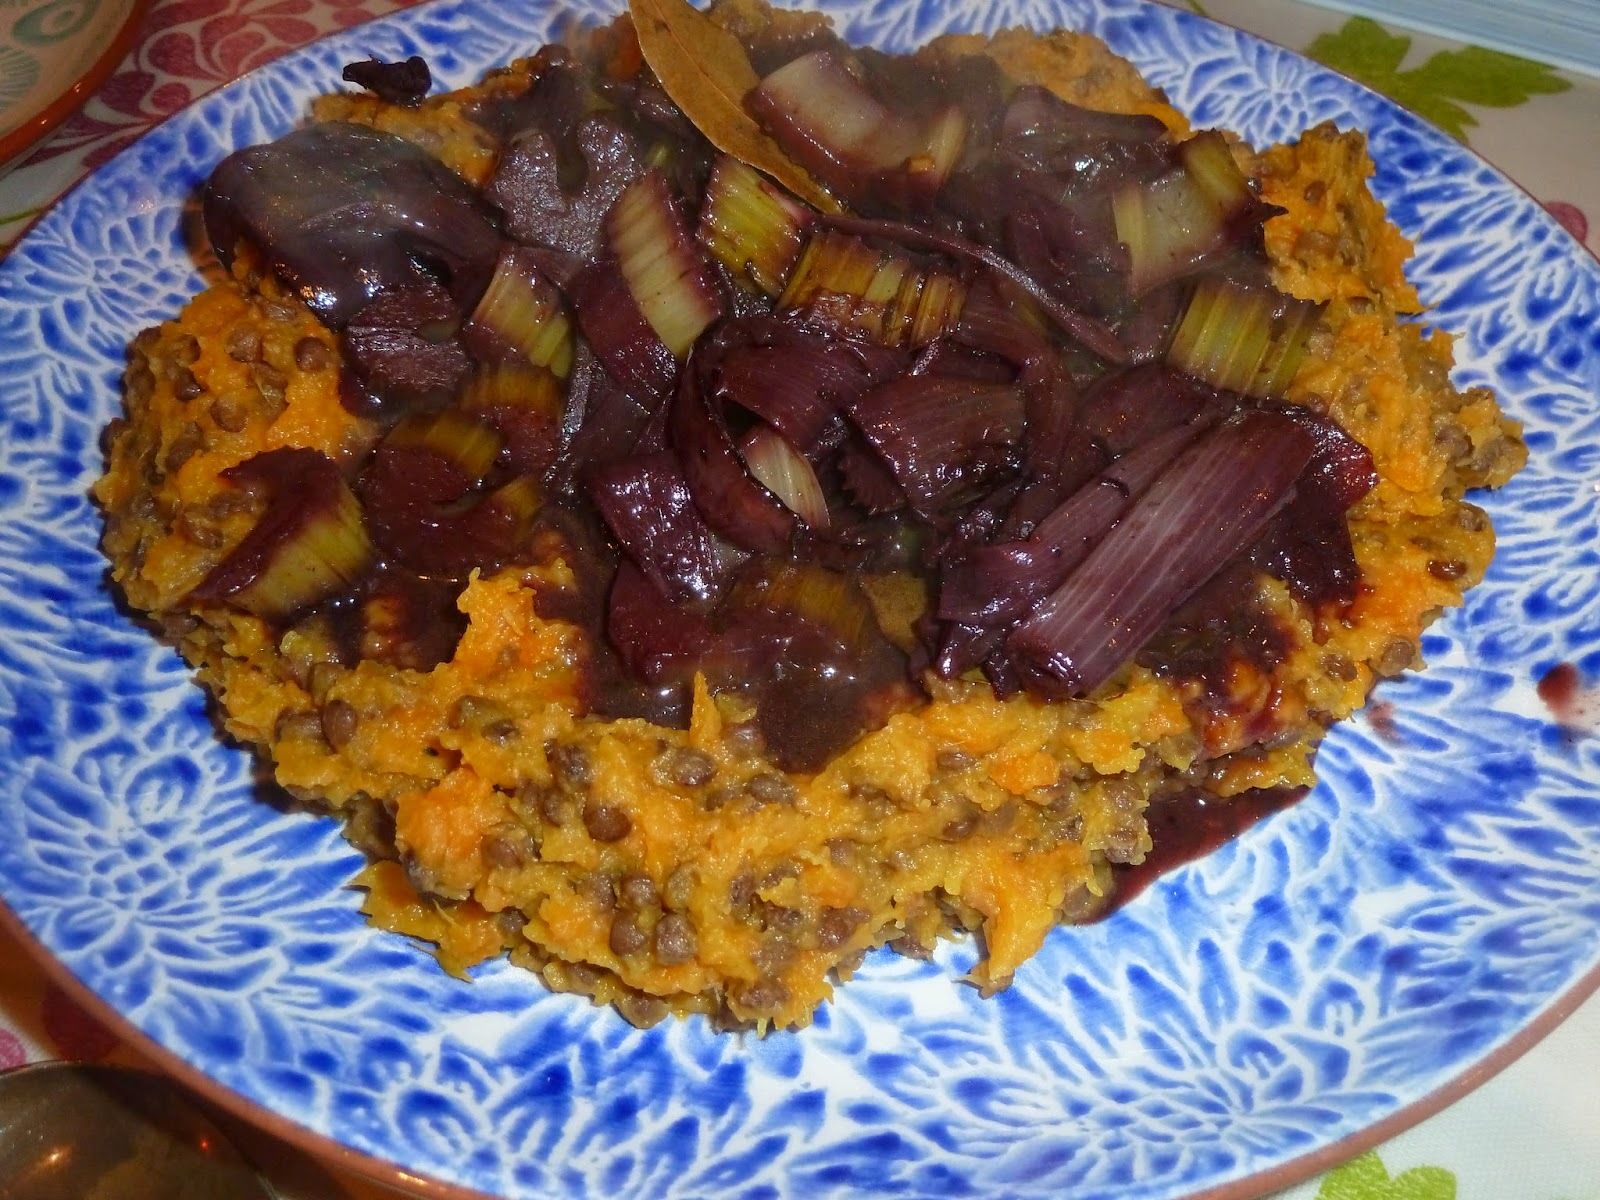 Root veg and squash mash with lentils, shallots braised in red wine